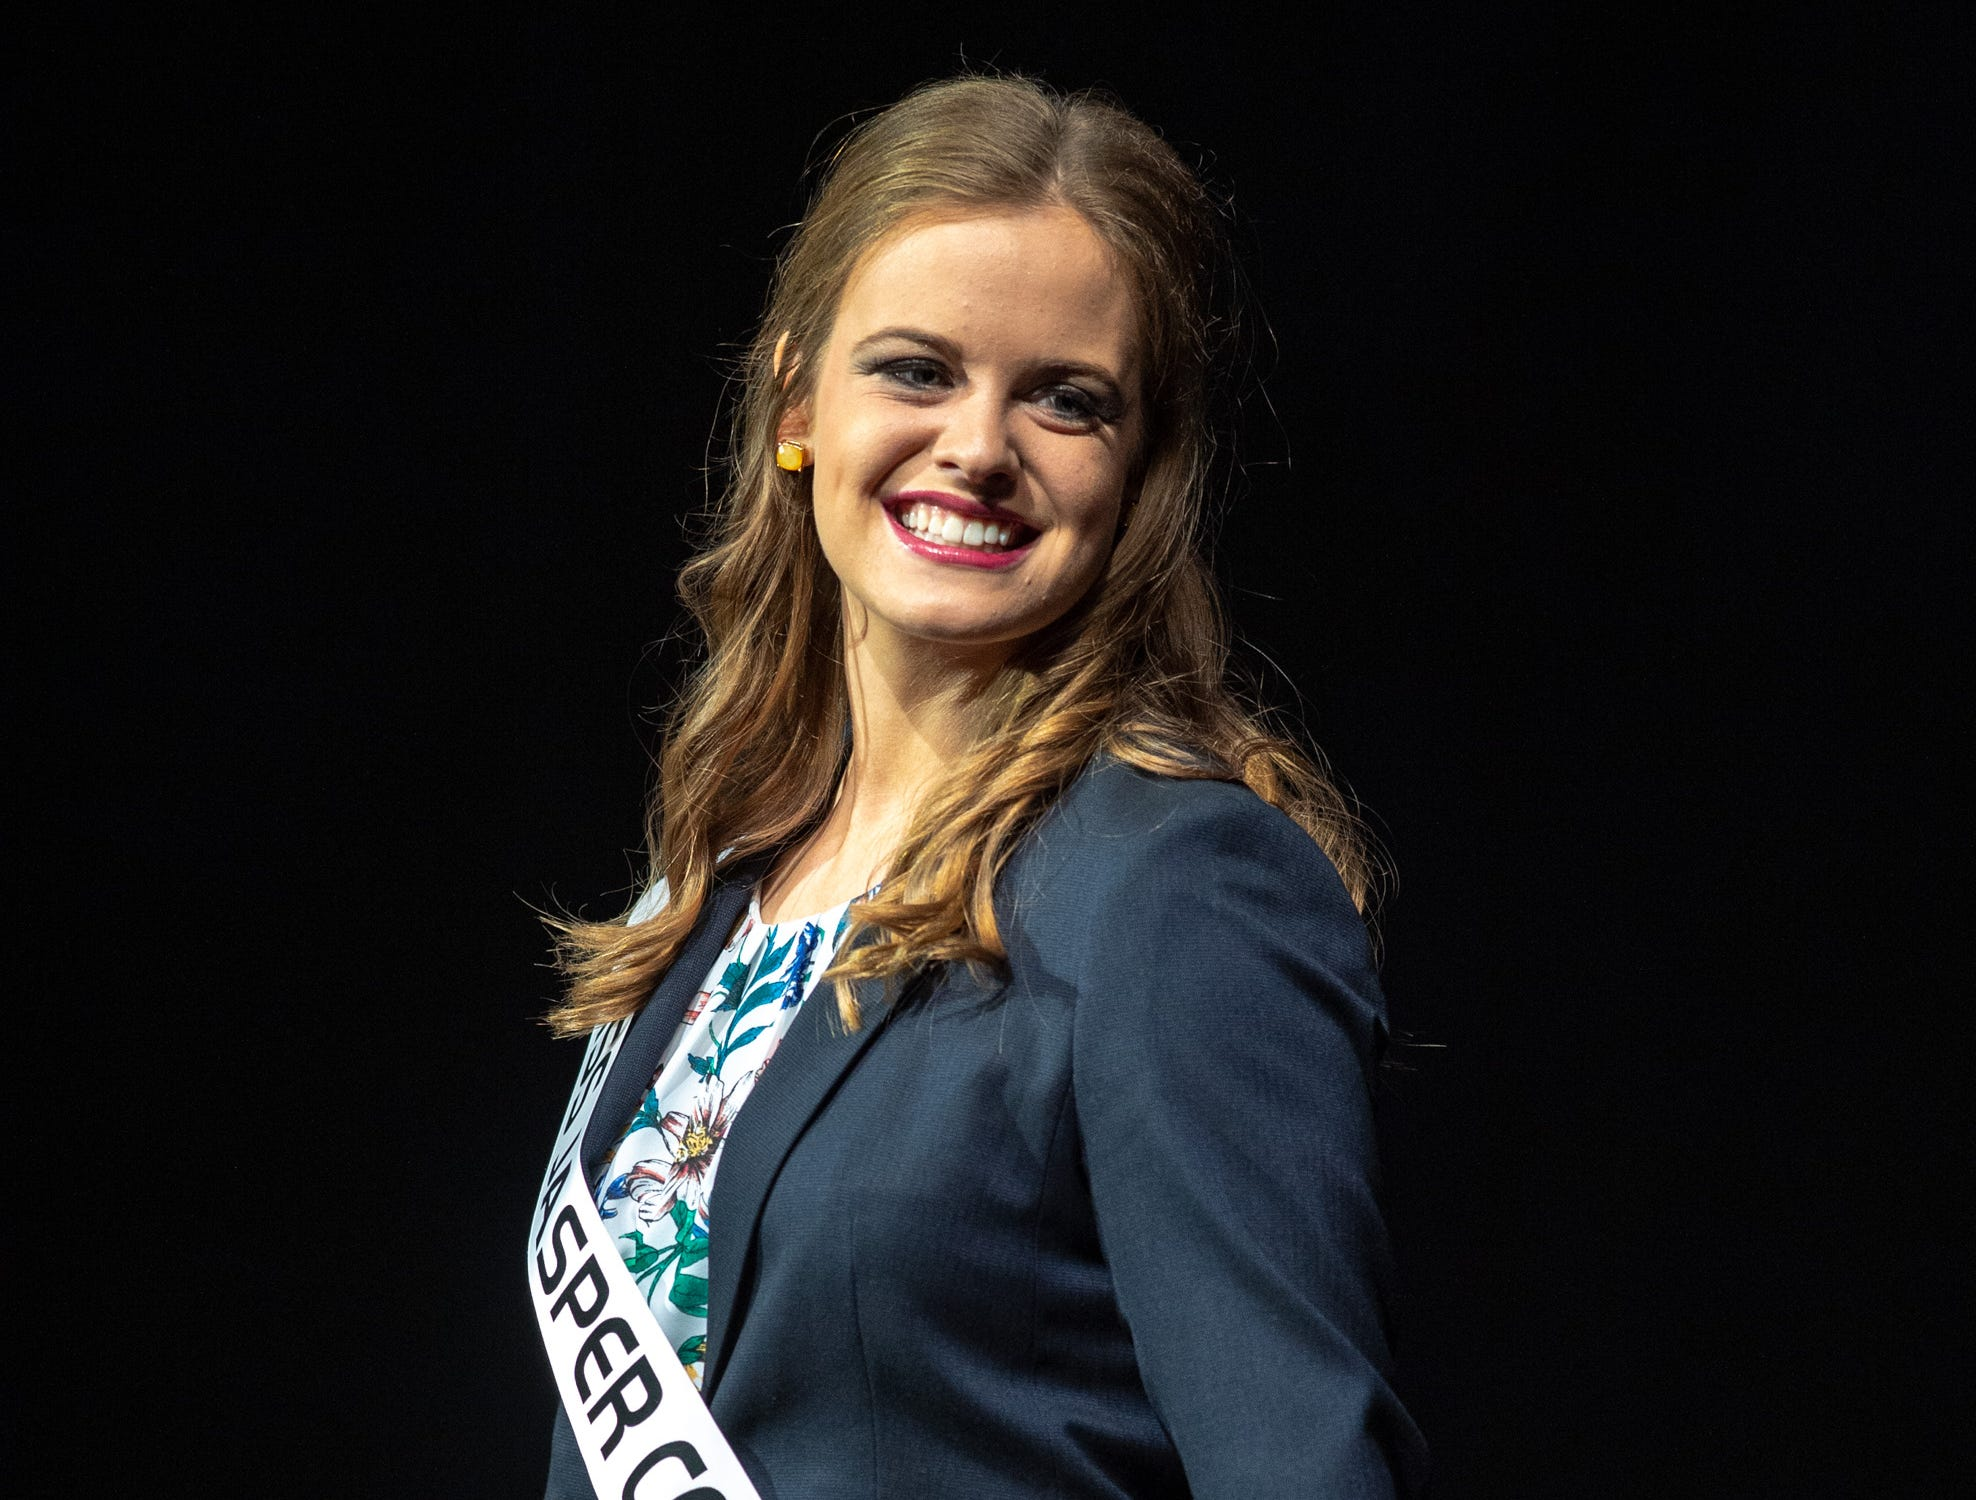 Miss Jasper County, Emily Kilmer, during the 61st Indiana State Fair Queen Pageant at the Indiana State Fairgrounds in Indianapolis on Sunday, Jan. 6, 2019.